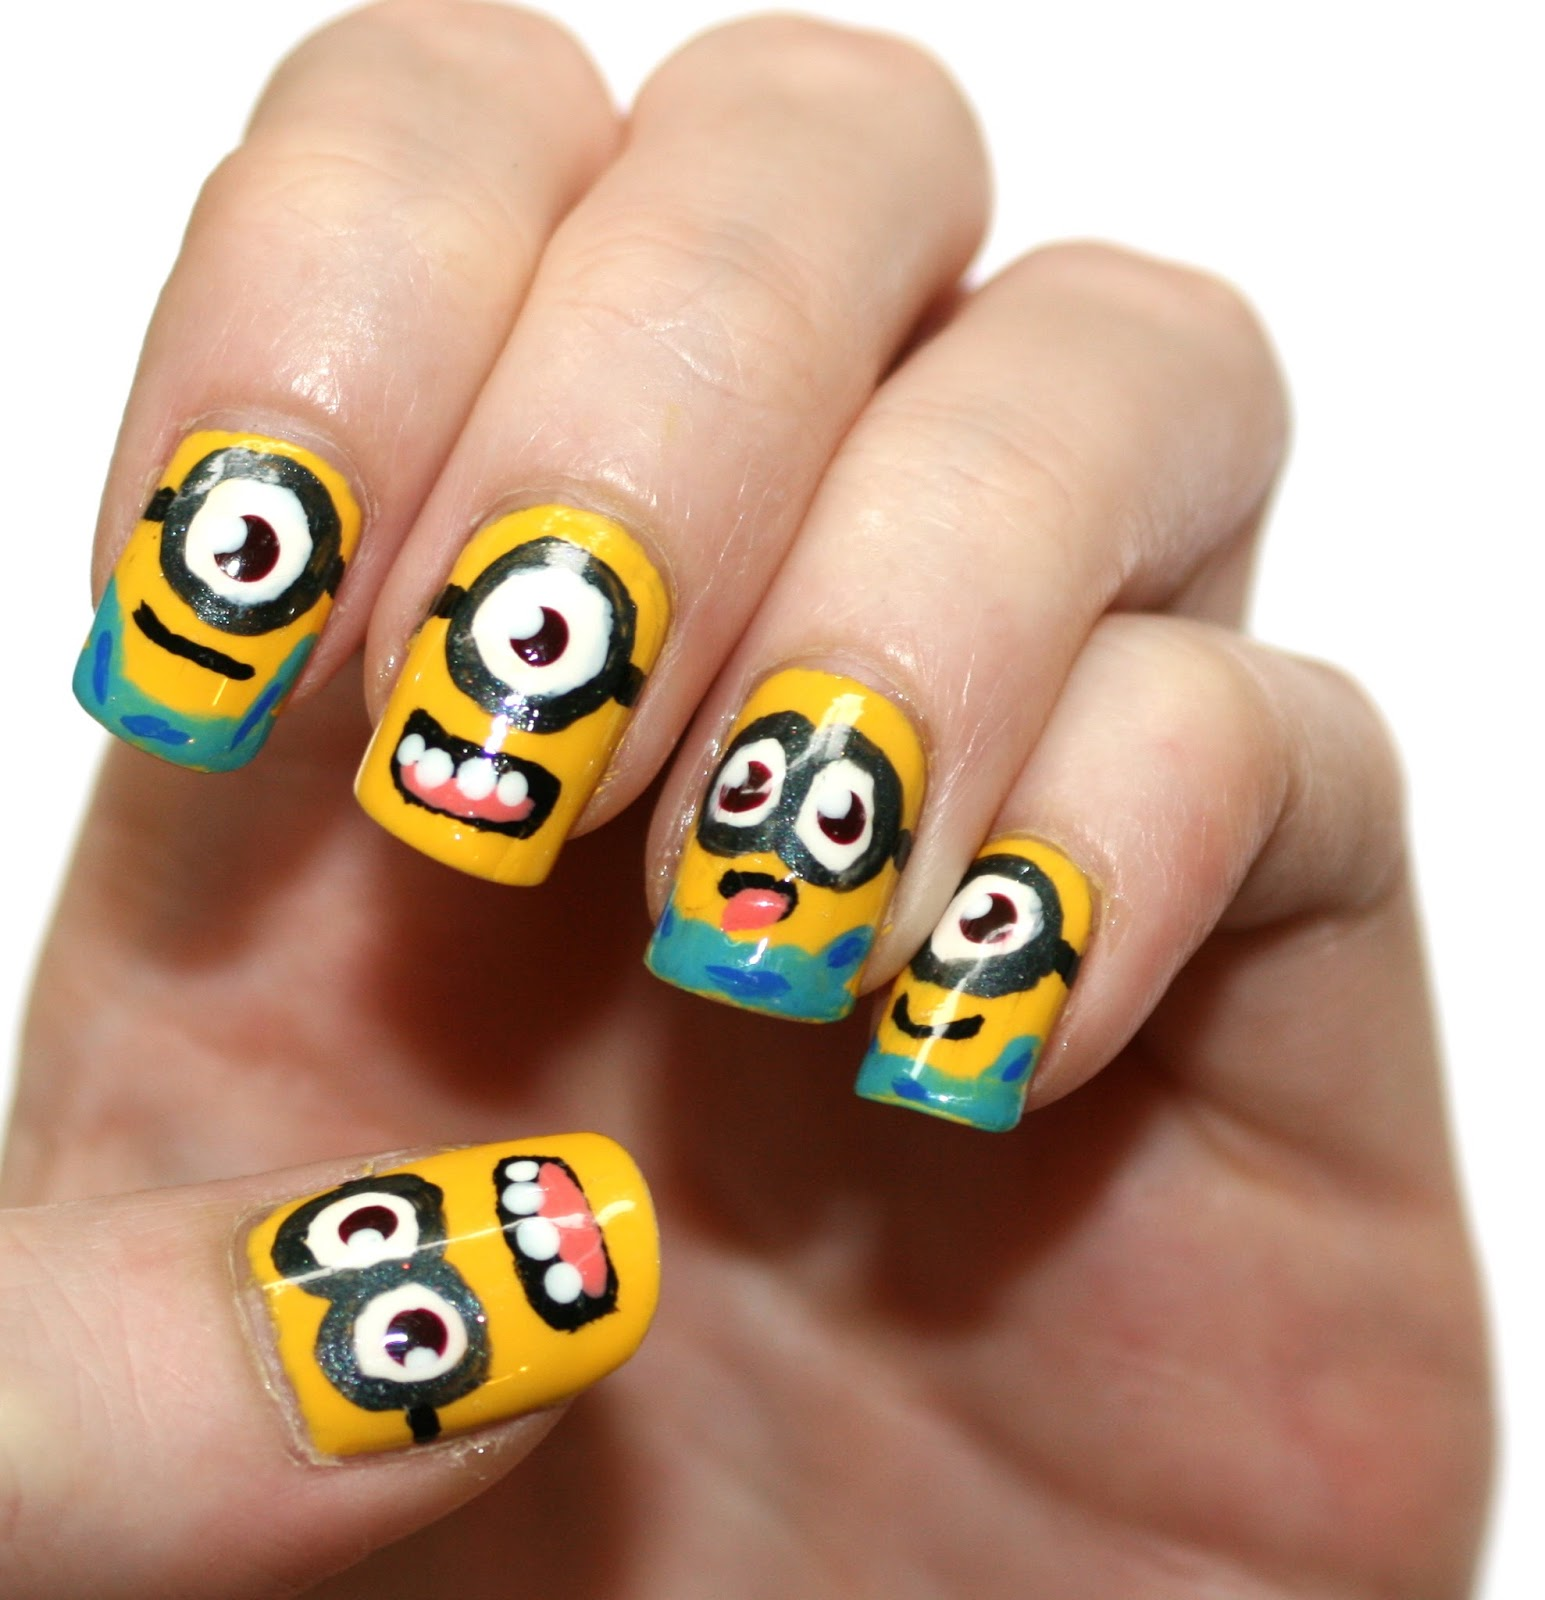 evlady: Despicable Me Minion Nail Art & Pictorial